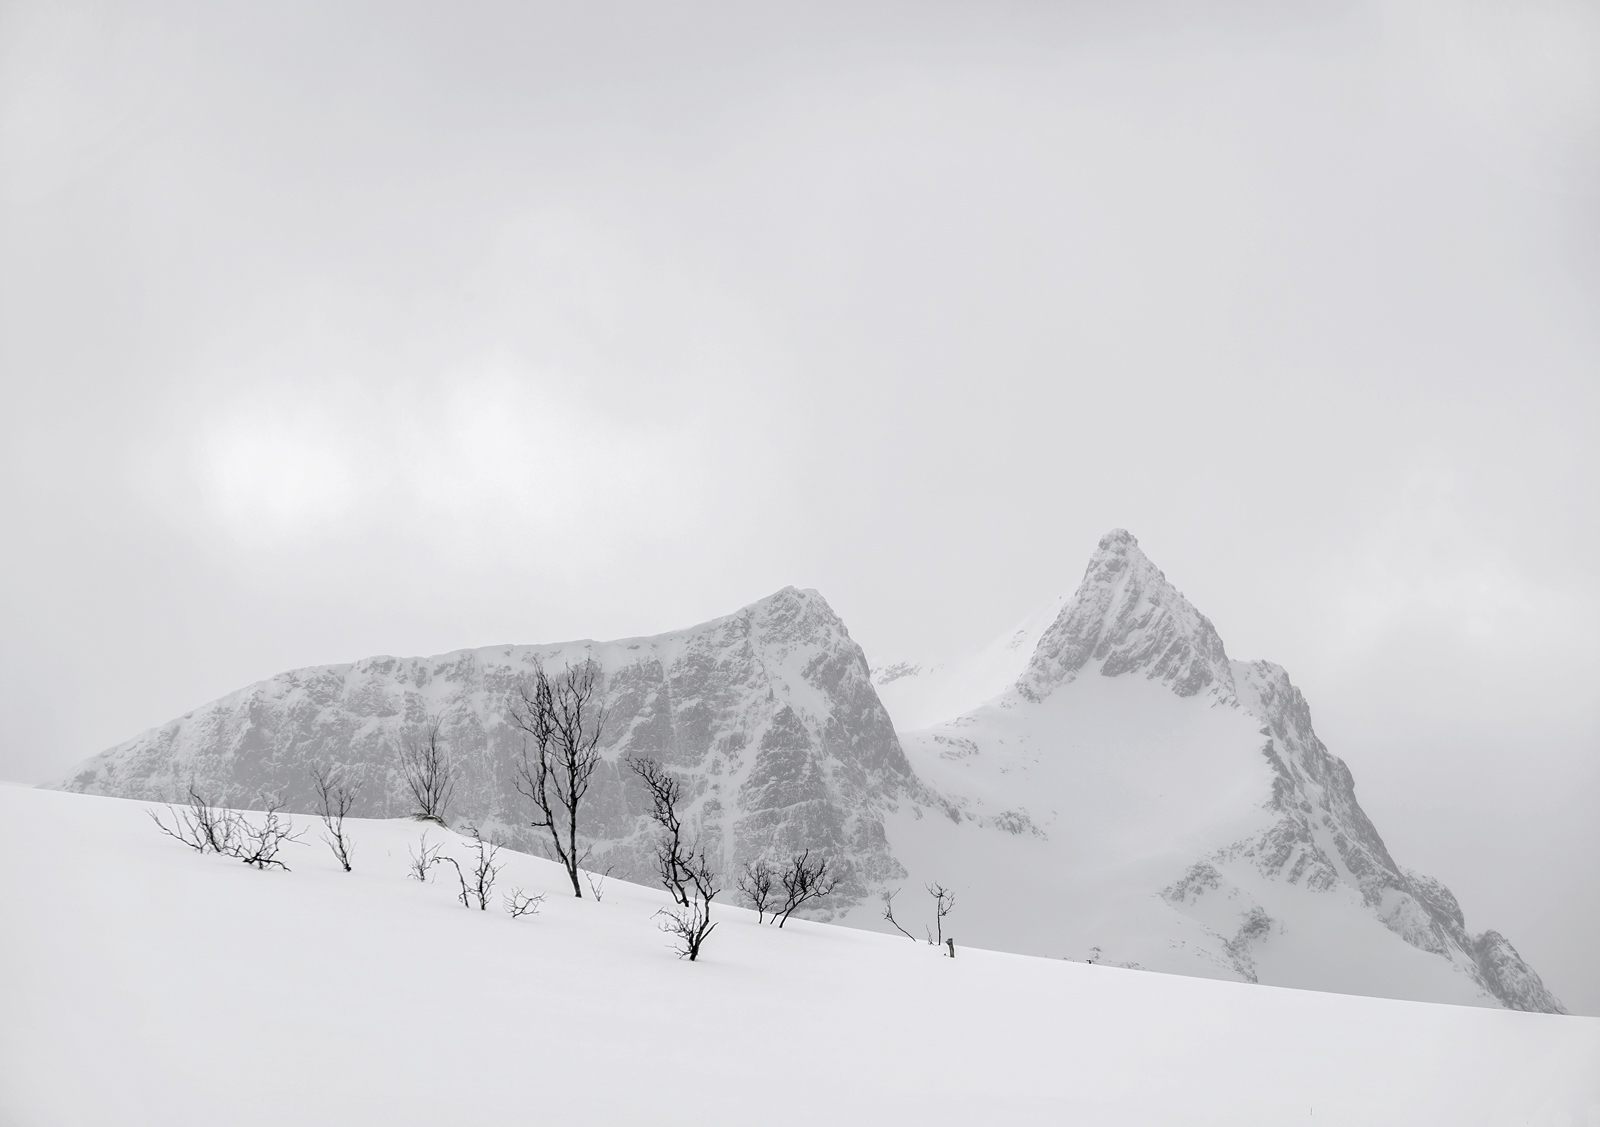 Charcoal Peak 5, Melfjordbotn, Senja, Norway, subdued, sunlight, sleet, mountains, birch, trees, visible, snow, etched, photo